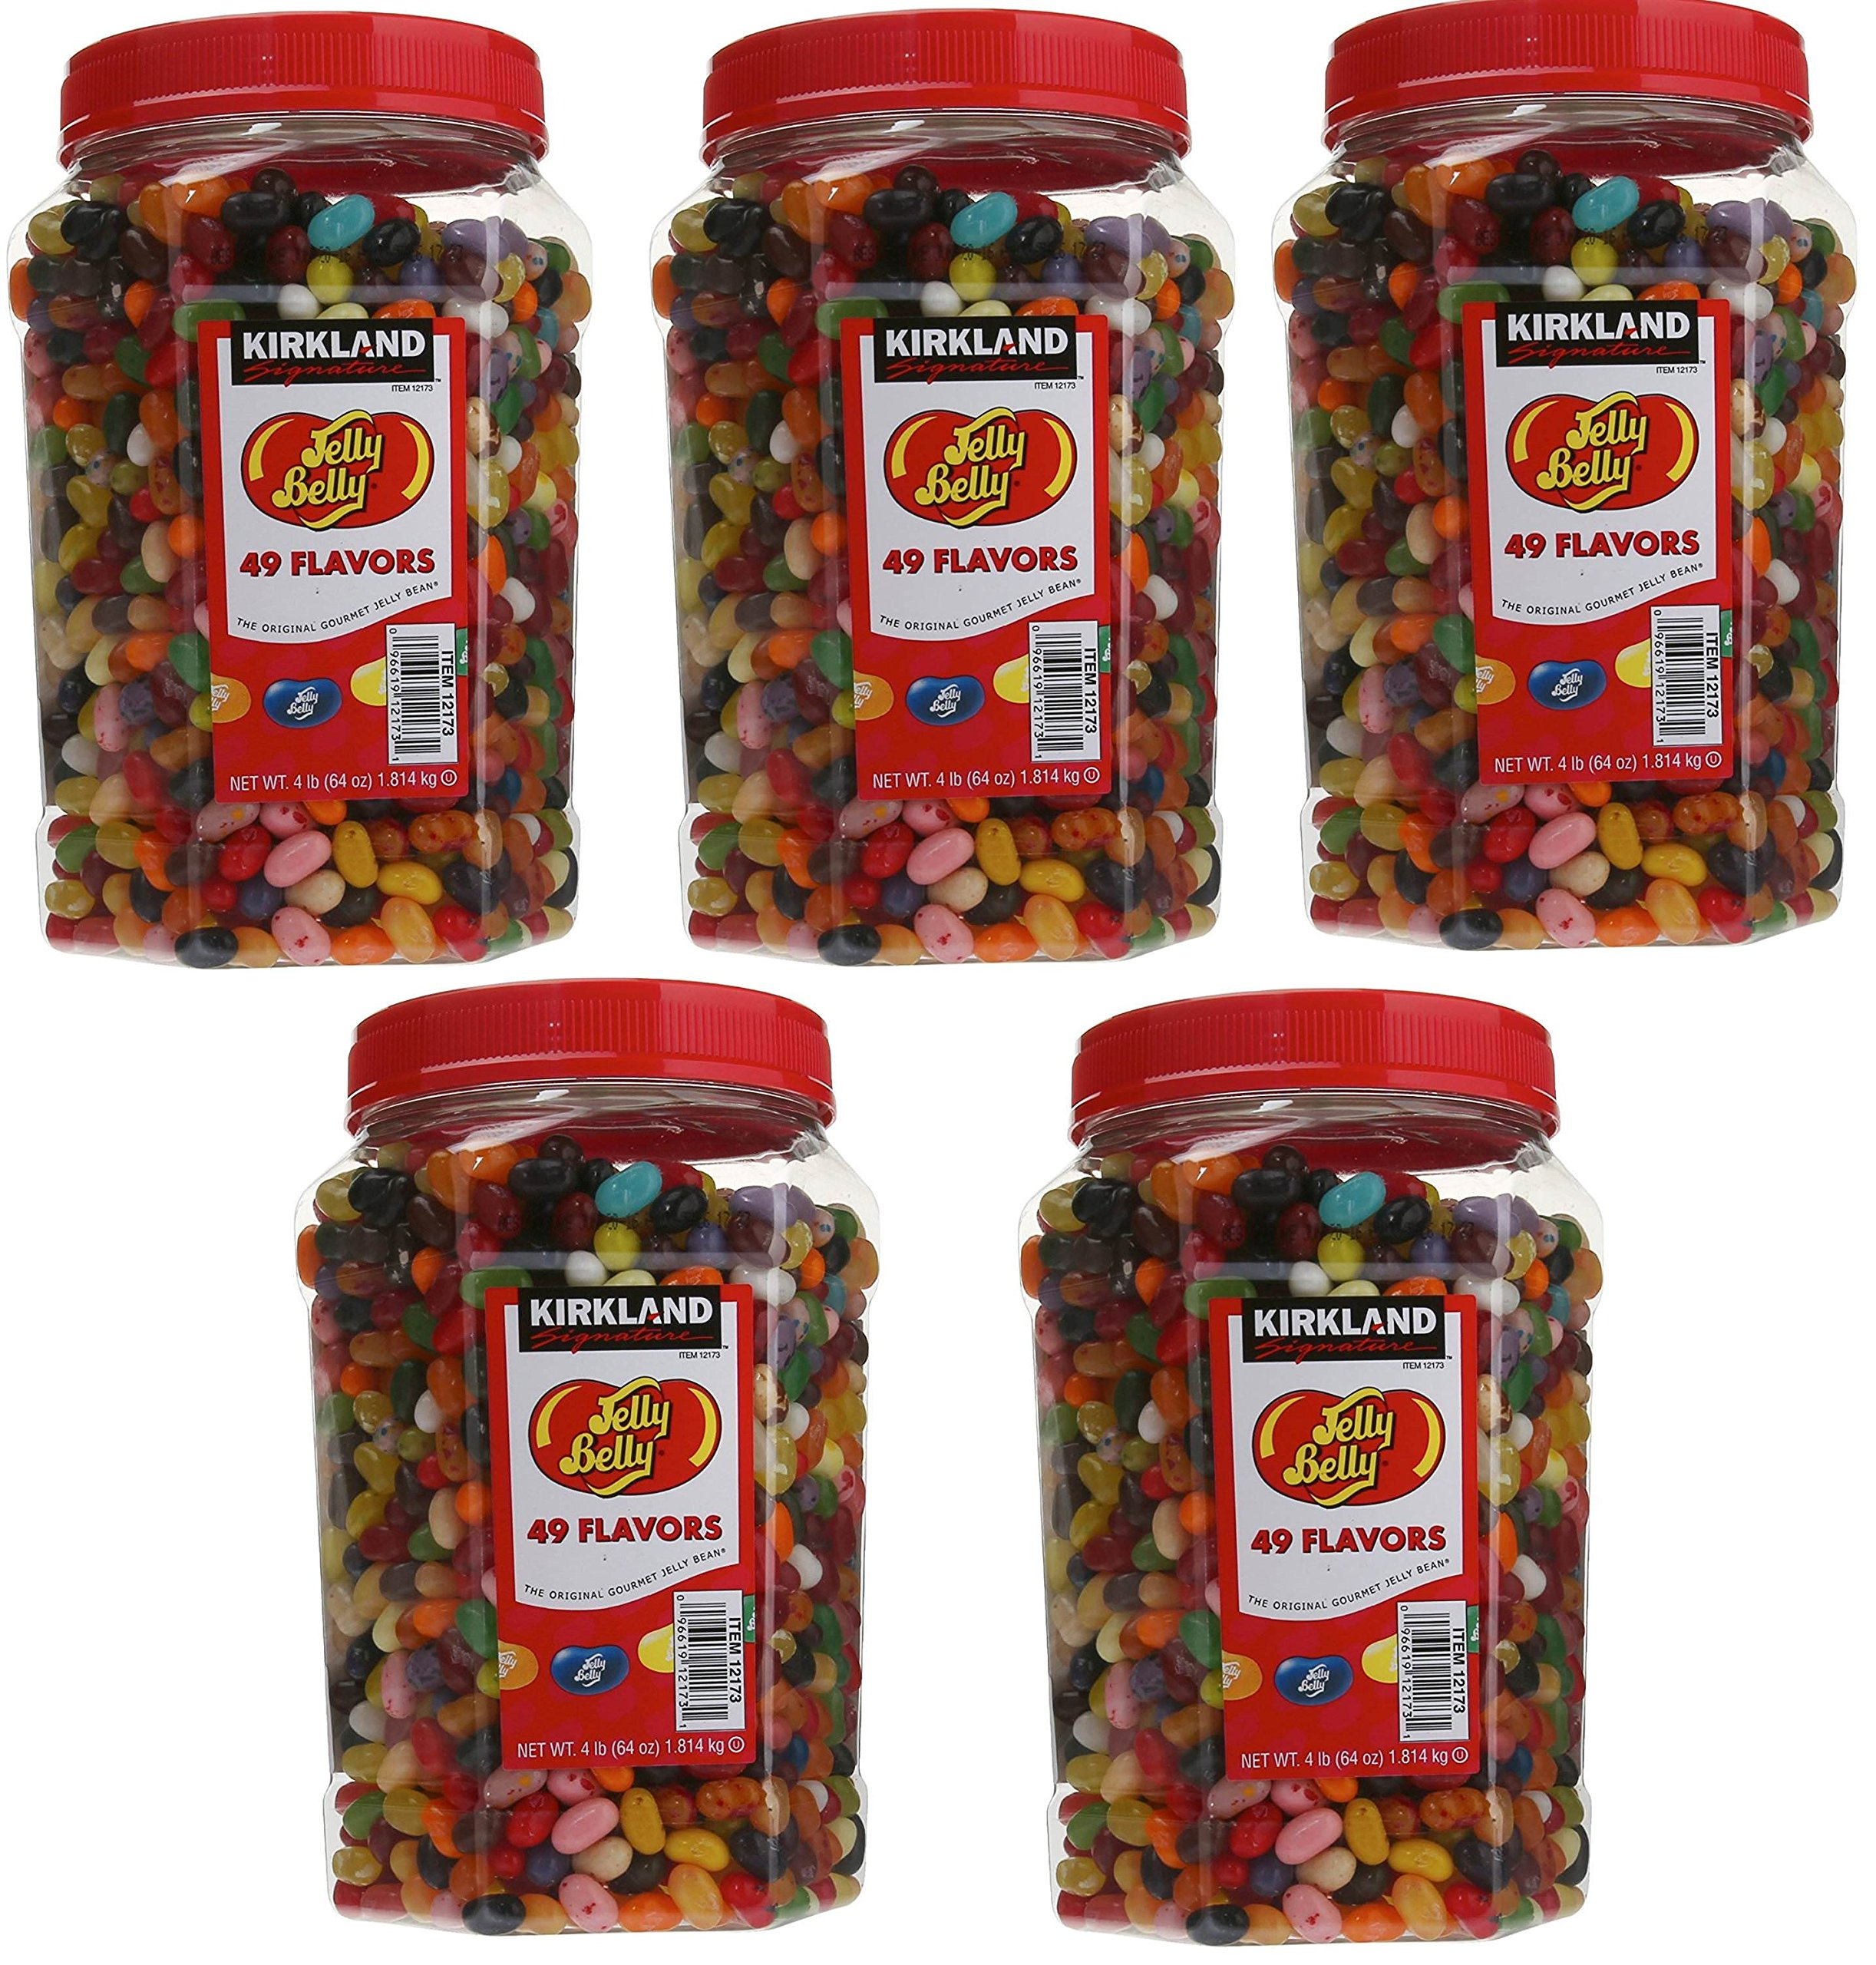 Kirkland Signature Jelly Belly Jelly Beans, 20 Pounds